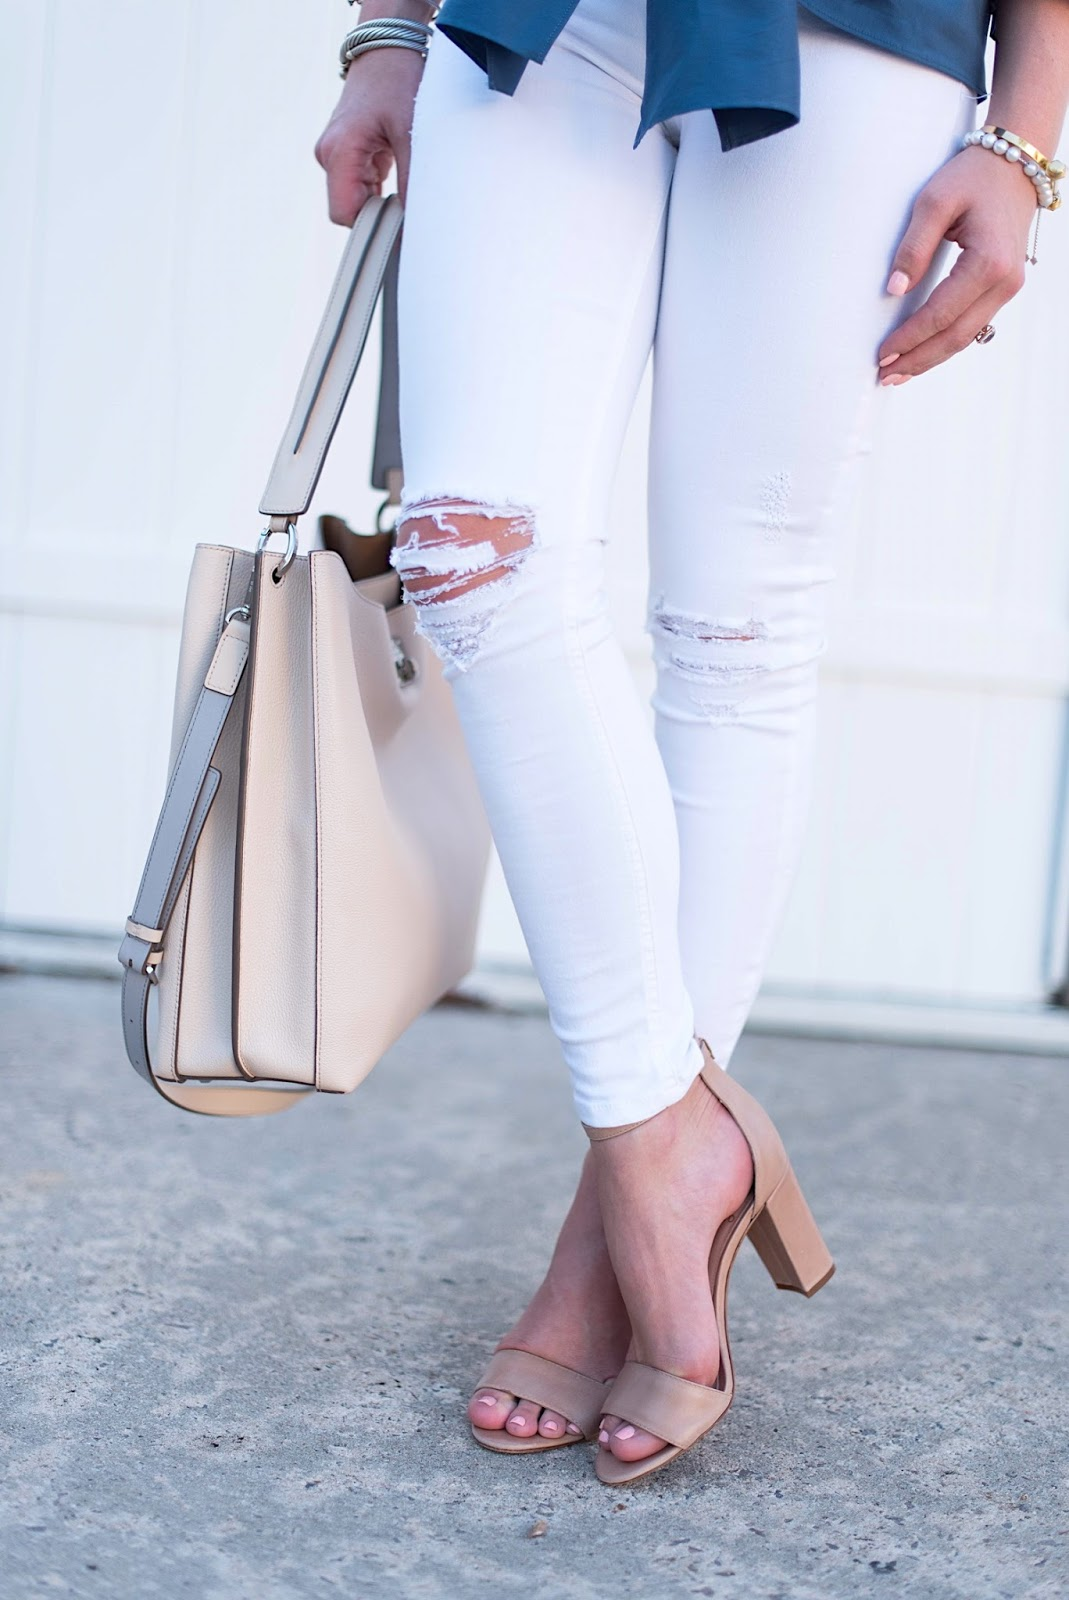 Nude Sandals - Click through to see more on Something Delightful!